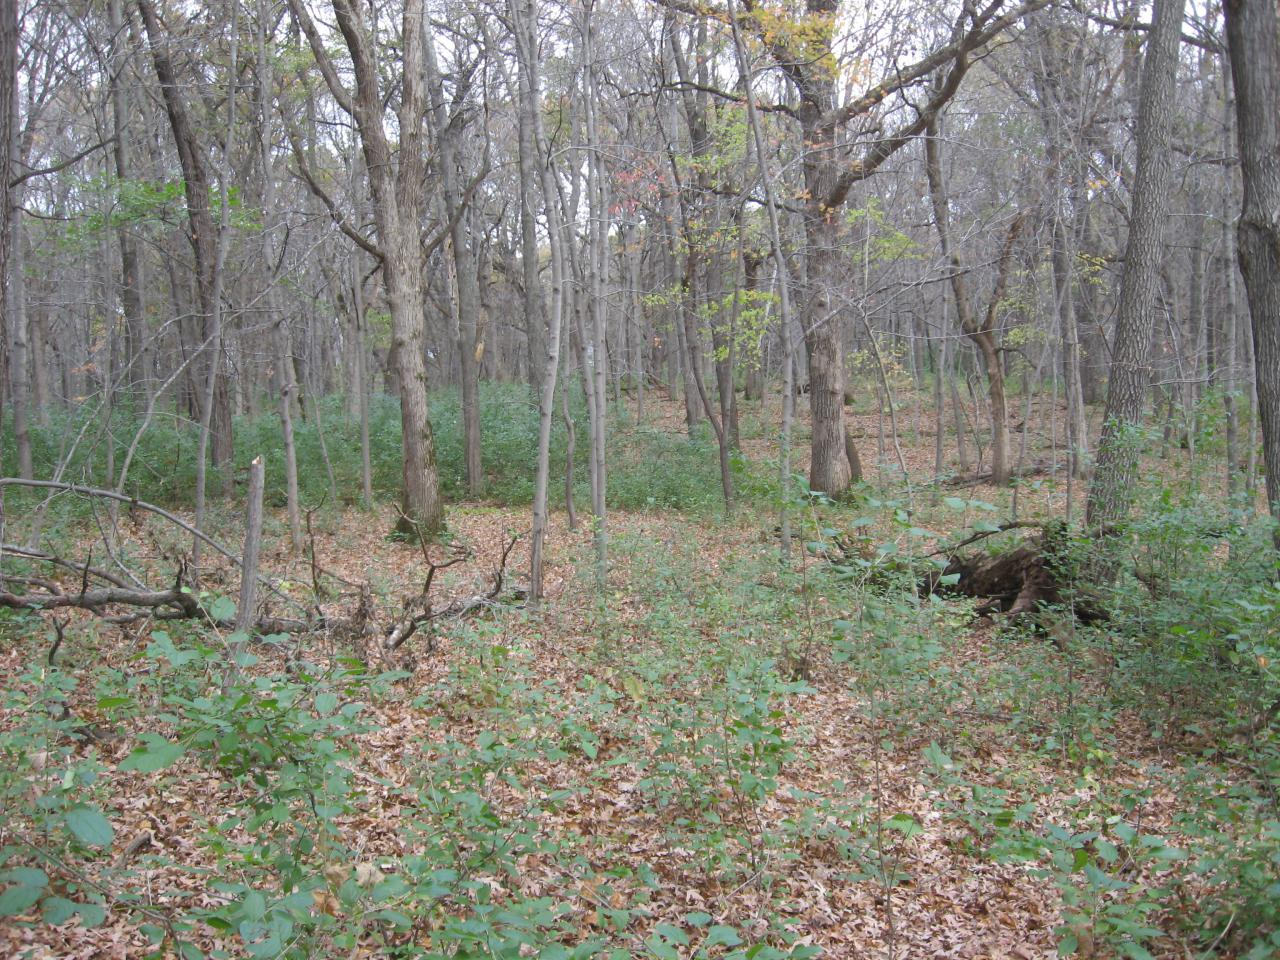 A layer of green on an otherwise gray and brown backdrop is evidence of buckthorn's distinctive phenology.